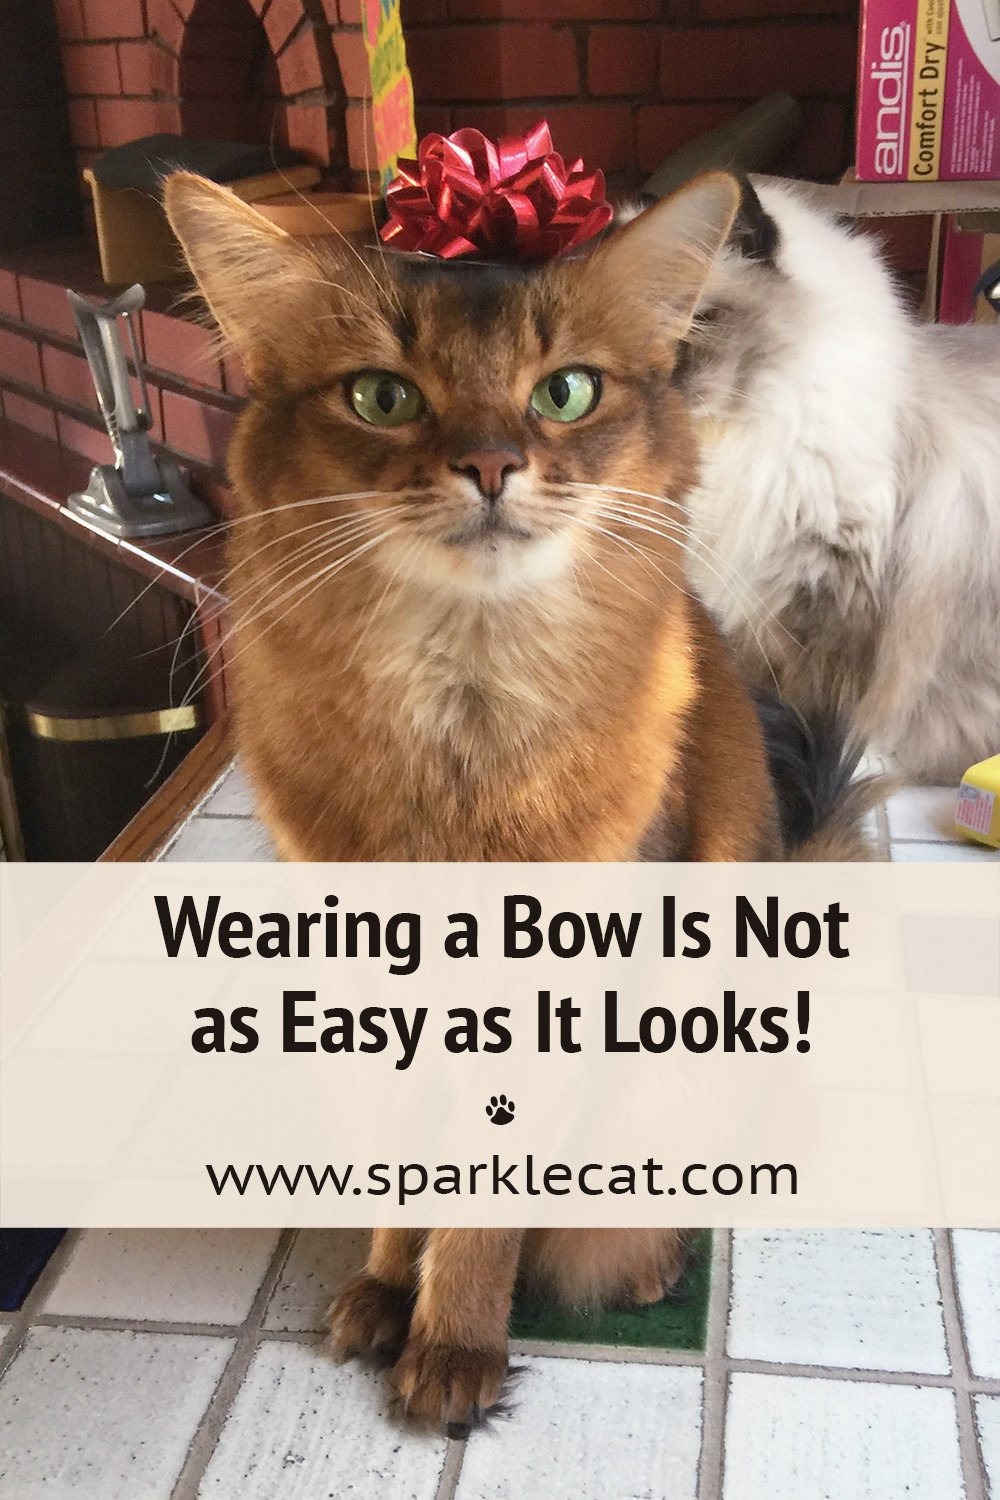 Wearing a Bow Is Not as Easy as It Looks!